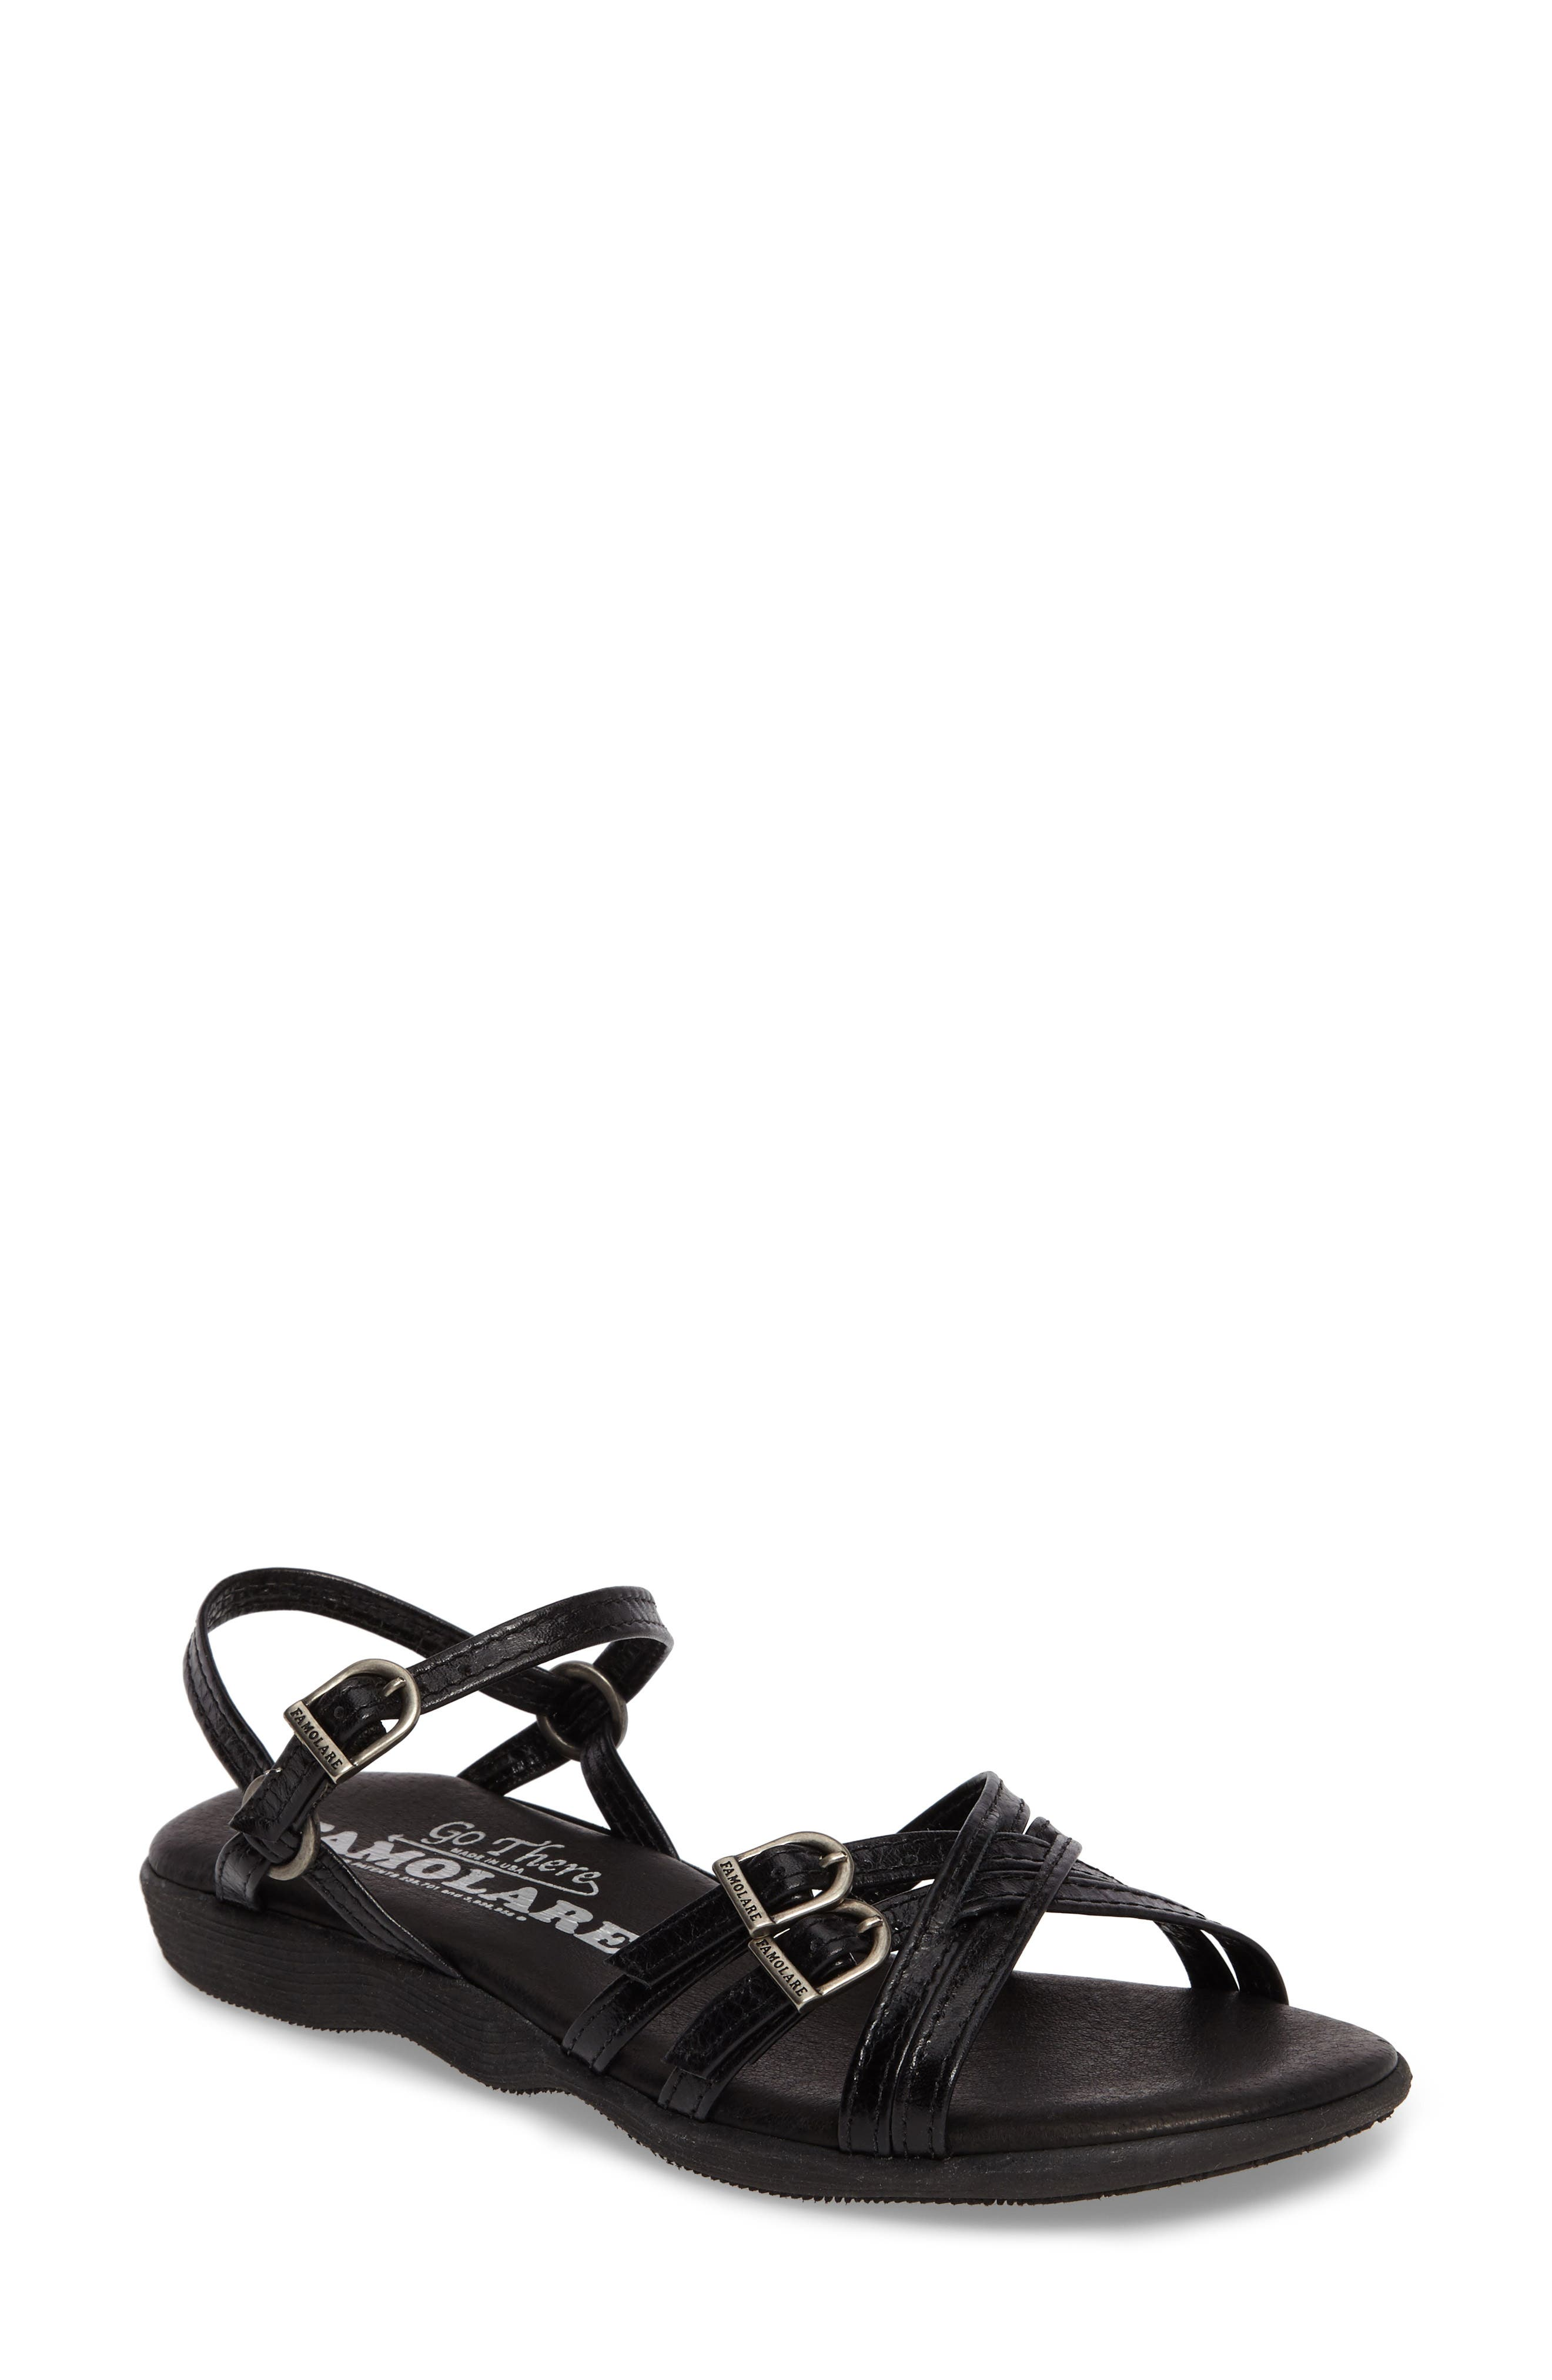 Strapsody Buckle Sandal,                         Main,                         color, Coal Leather